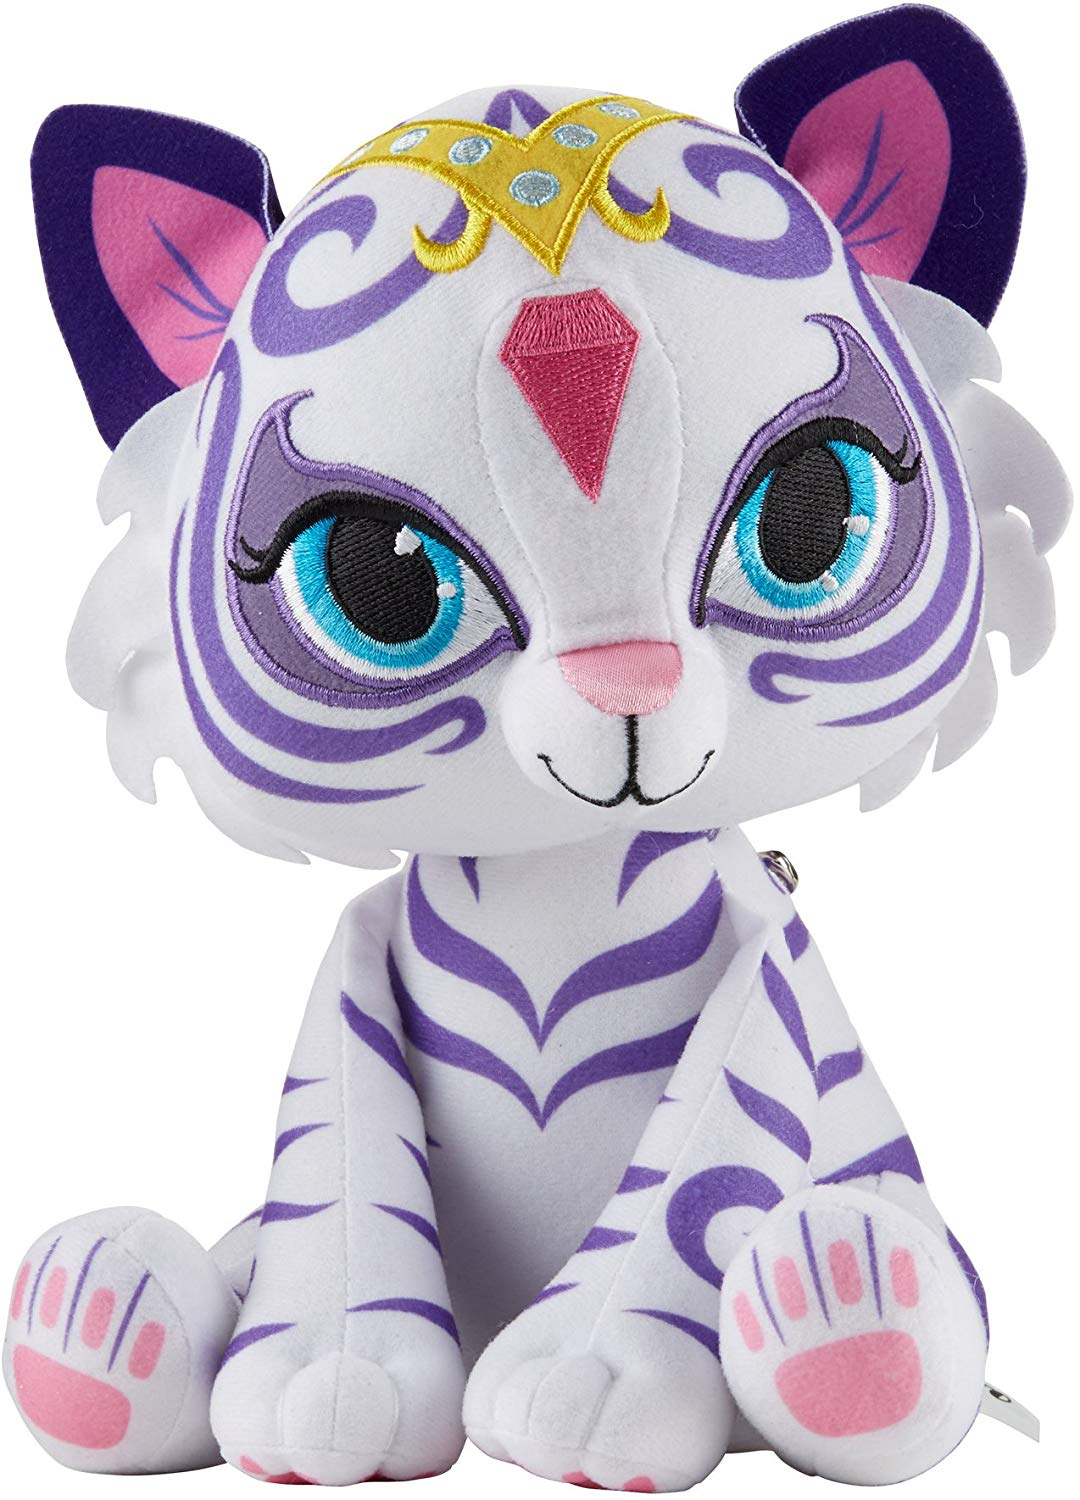 Shimmer And Shine Song : shimmer, shine, Fisher-Price, Nickelodeon, Shimmer, Shine,, Nahal,, Squeeze, Nahal', Tummy, Sounds, Song!, FisherPrice, Walmart.com